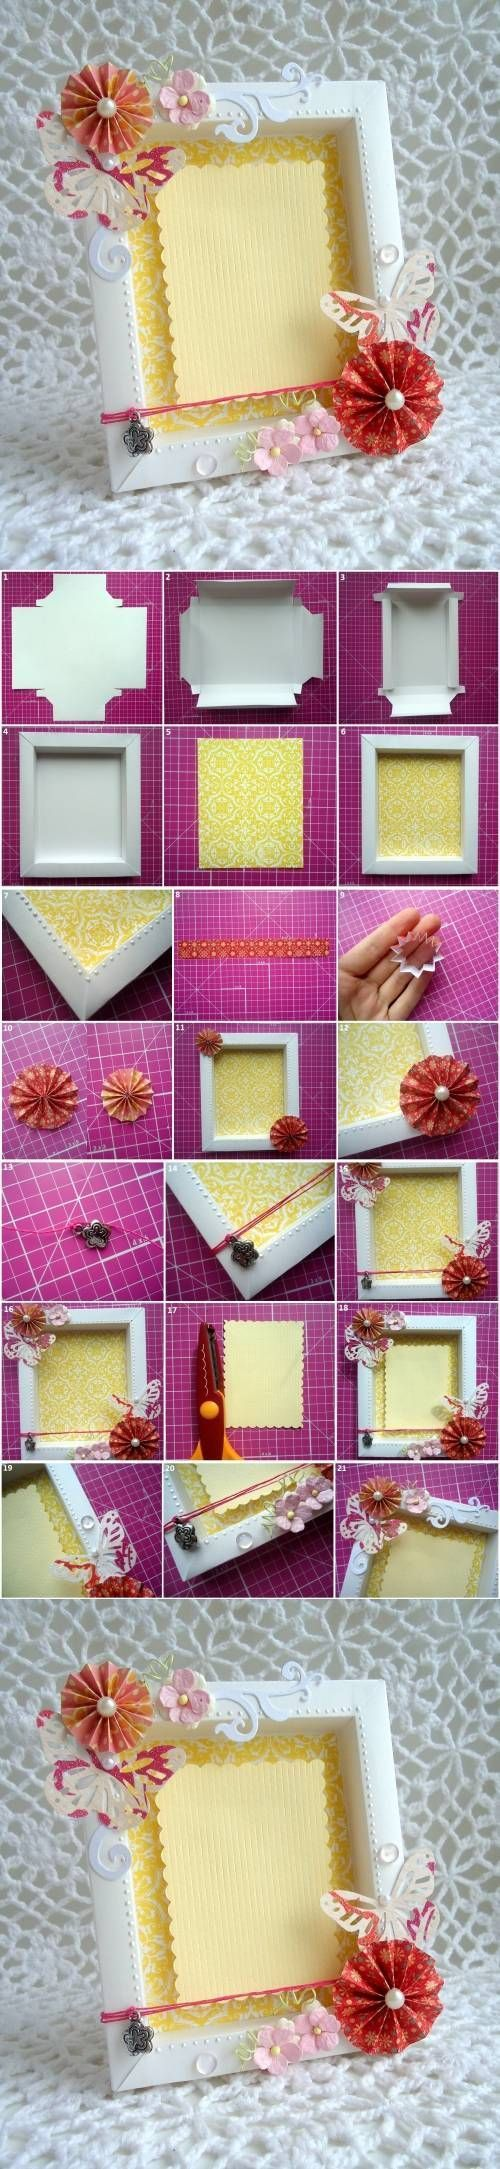 best 25 cool picture frames ideas on pinterest 5x7 picture